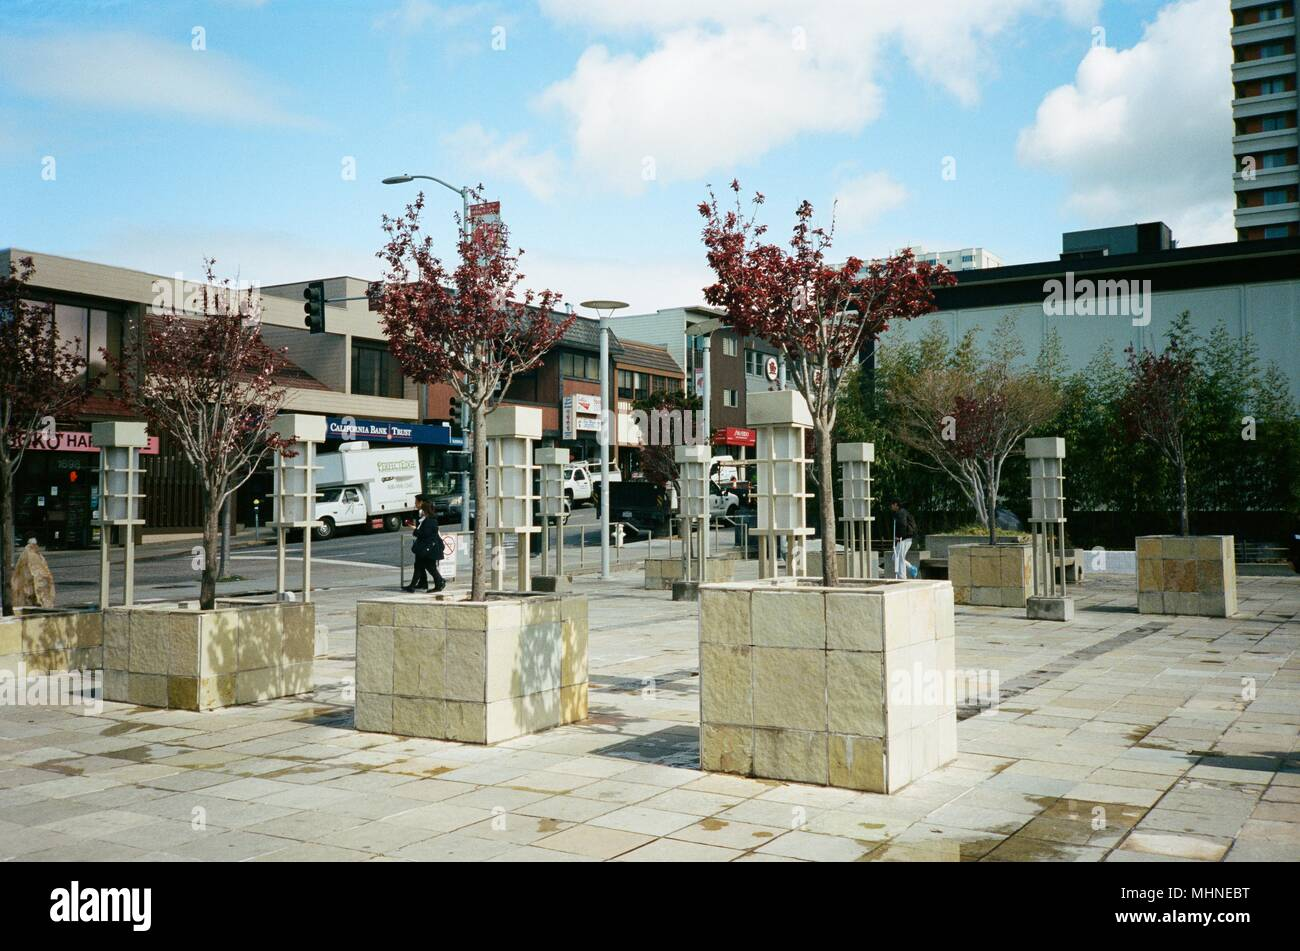 Young trees growing in planters at the Peace Plaza, a public park in Japantown, San Francisco, California, March 14, 2018. () - Stock Image